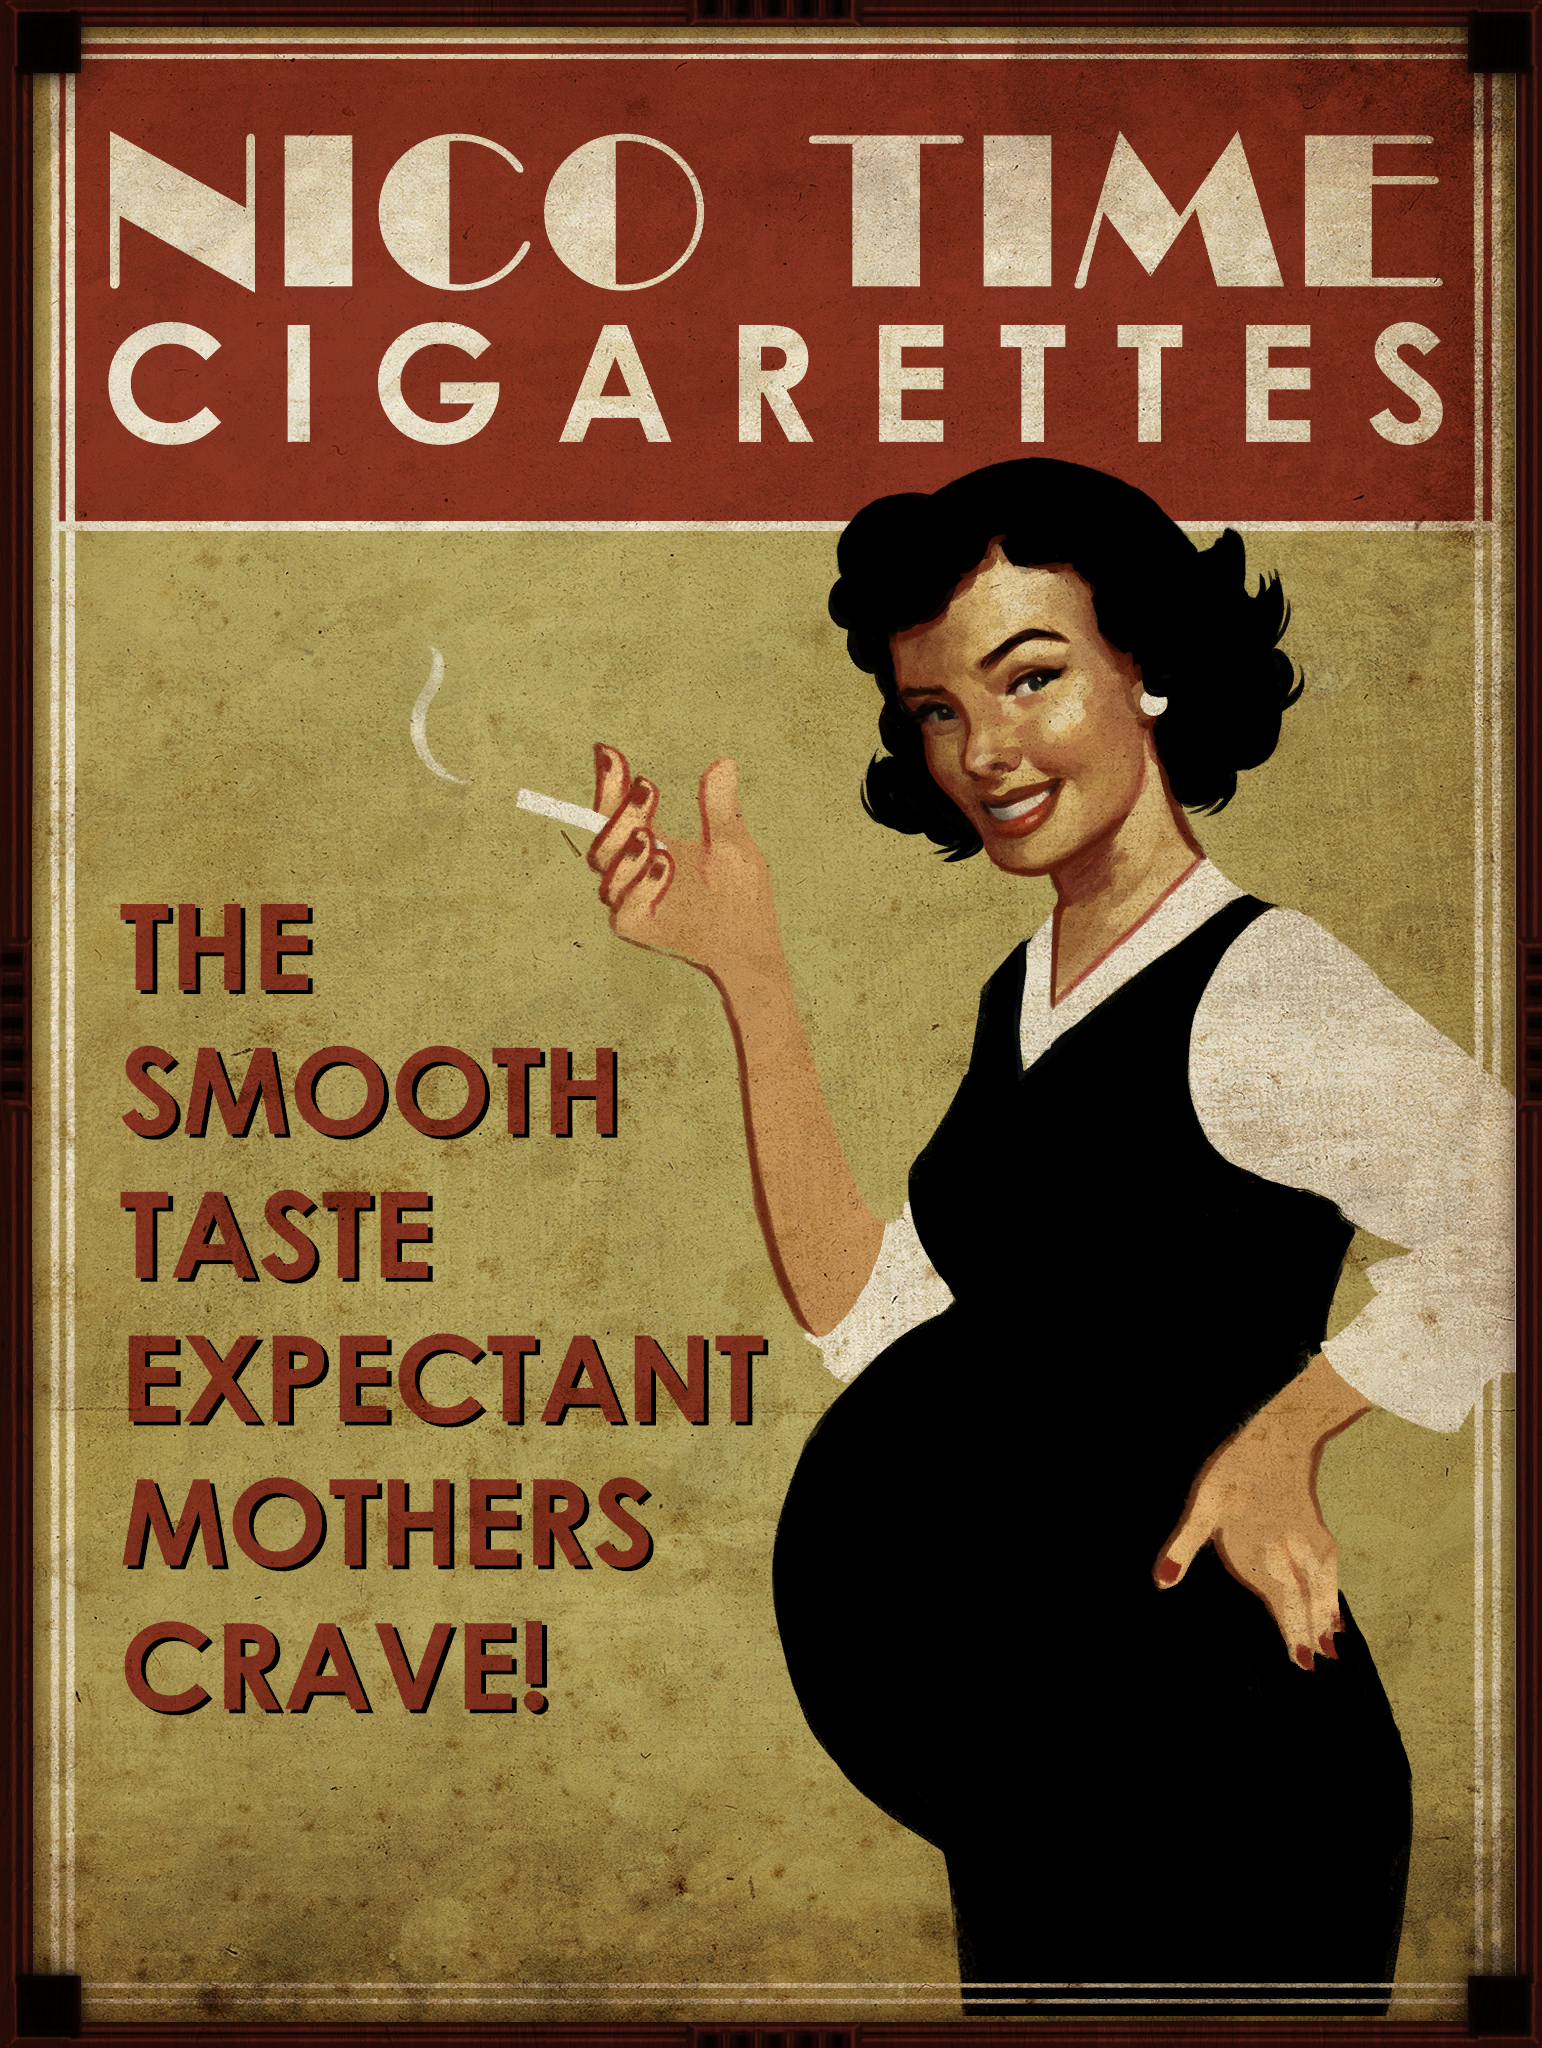 http://img4.wikia.nocookie.net/__cb20131124011121/bioshock/images/7/7b/Nicotimepregnant_bsi.png